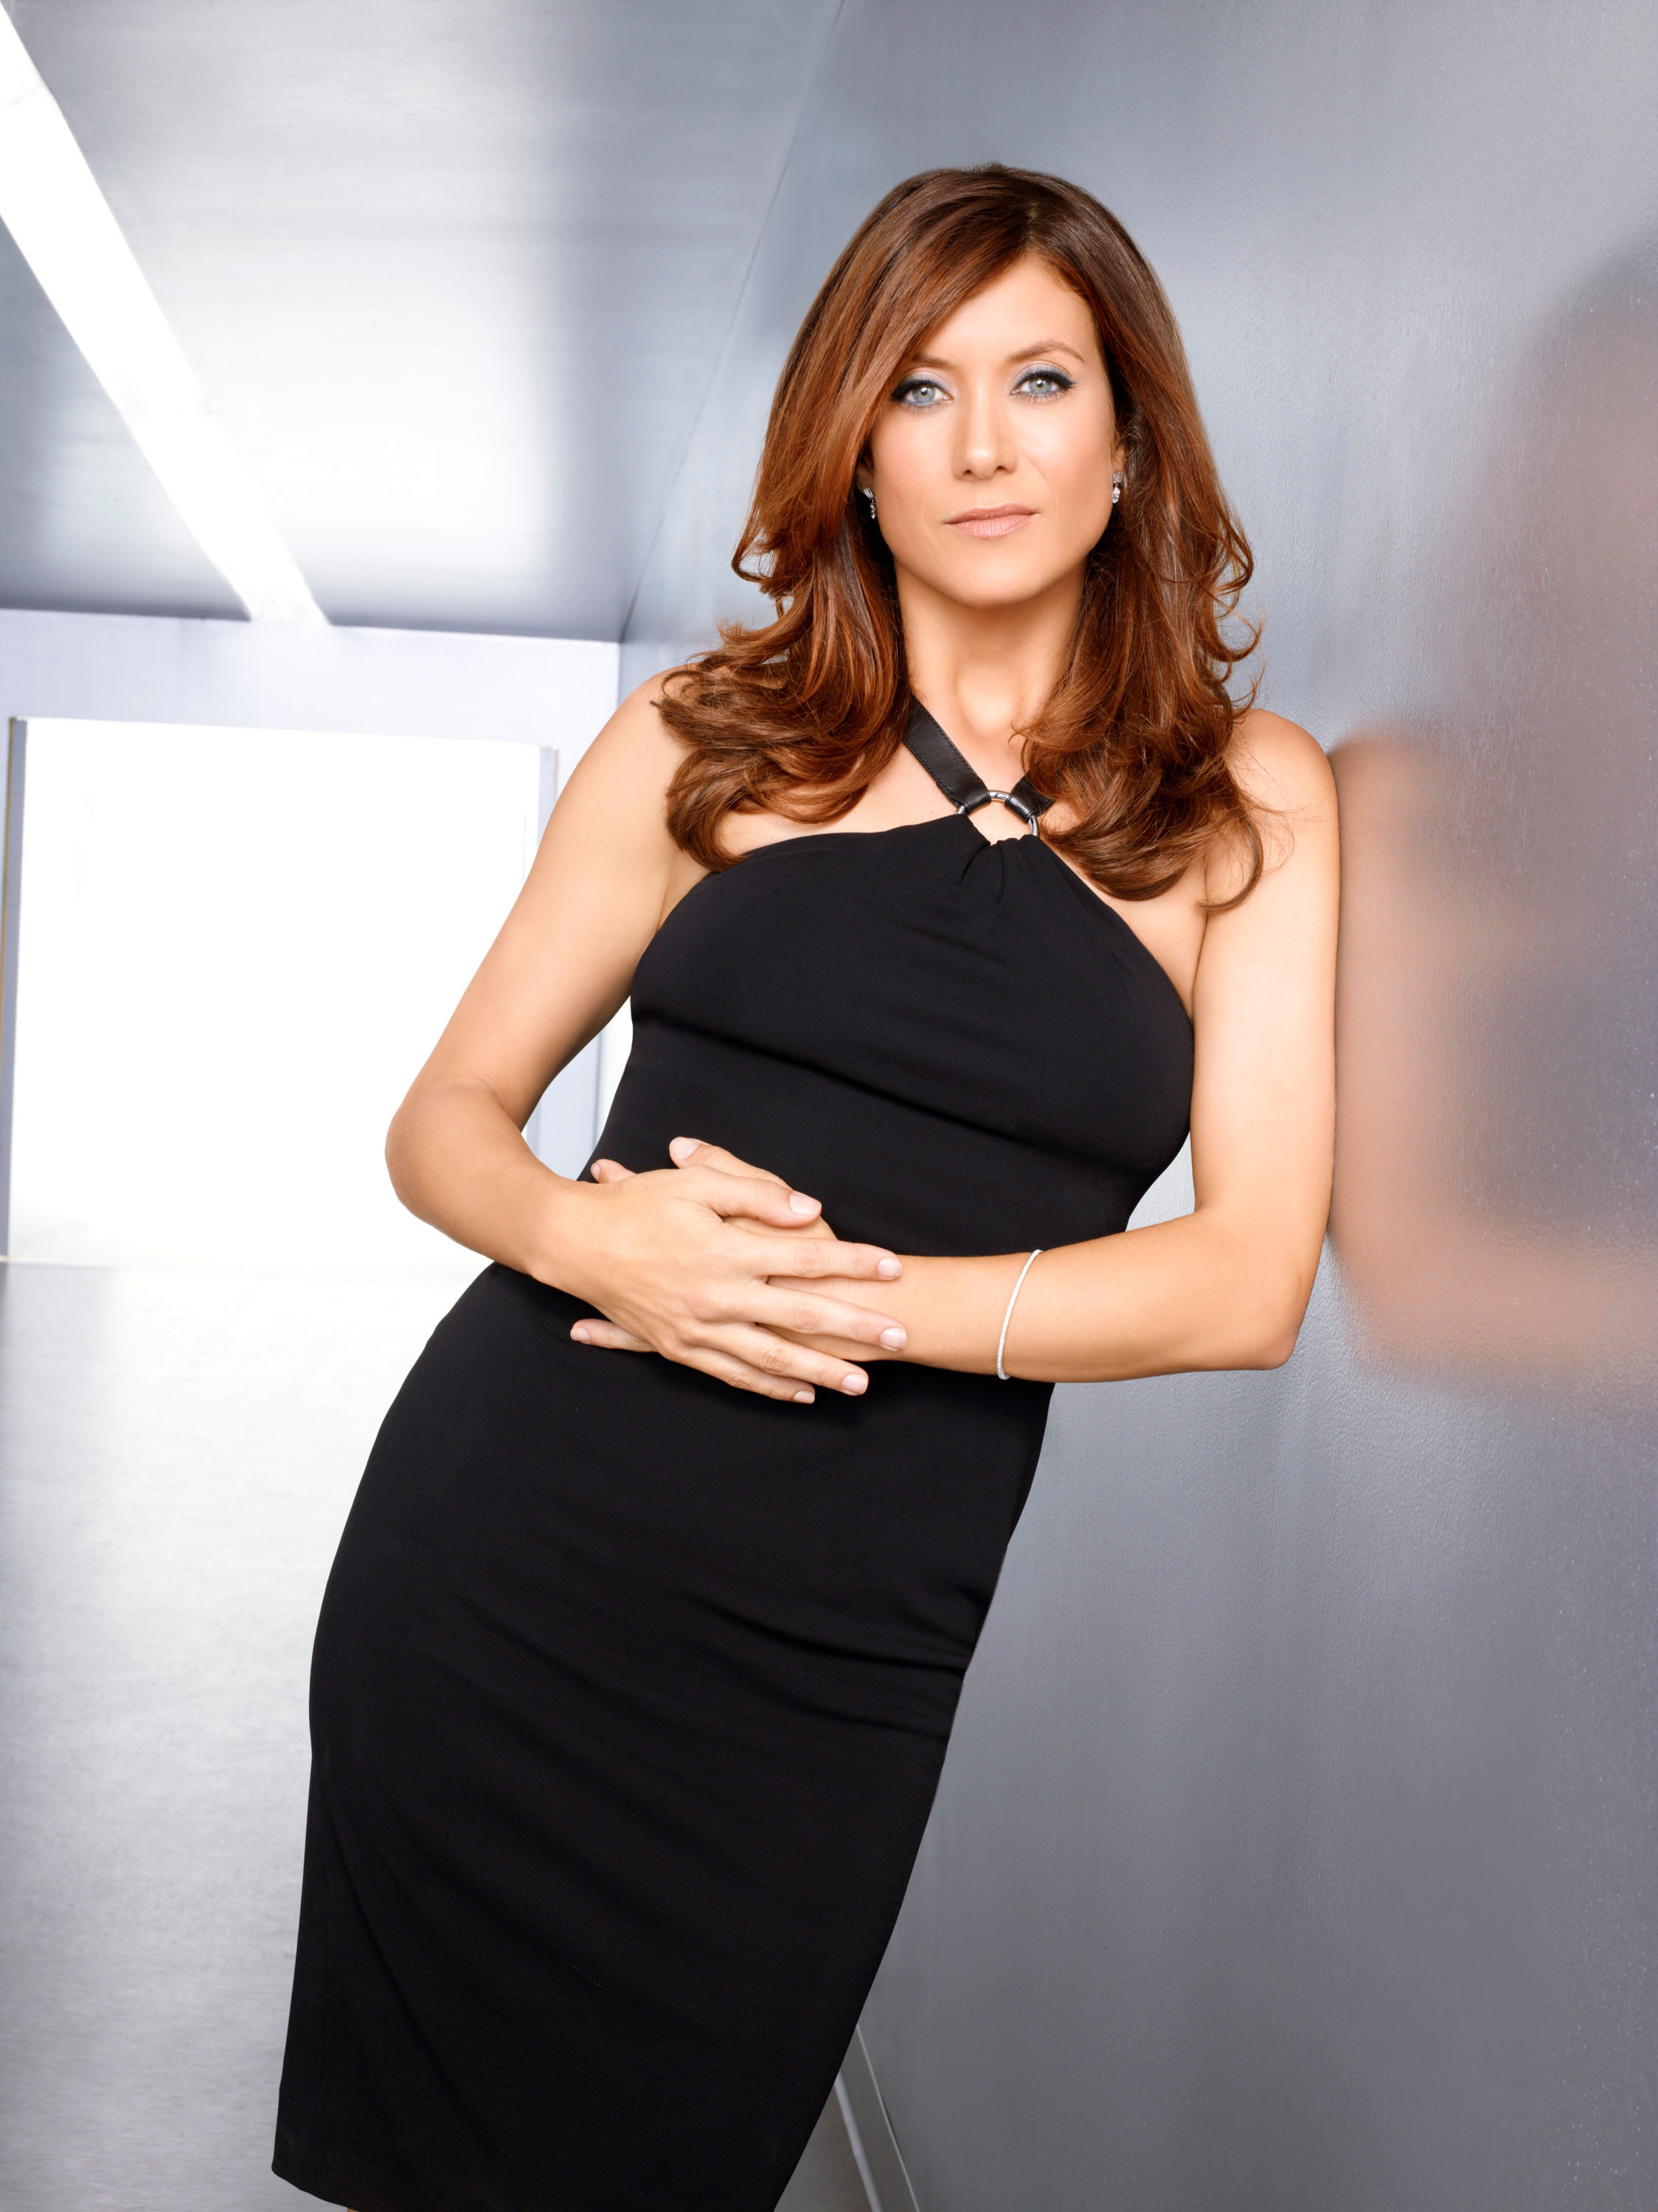 Private Practice Seasons 5 and 6 Promo Photos | DVDbash